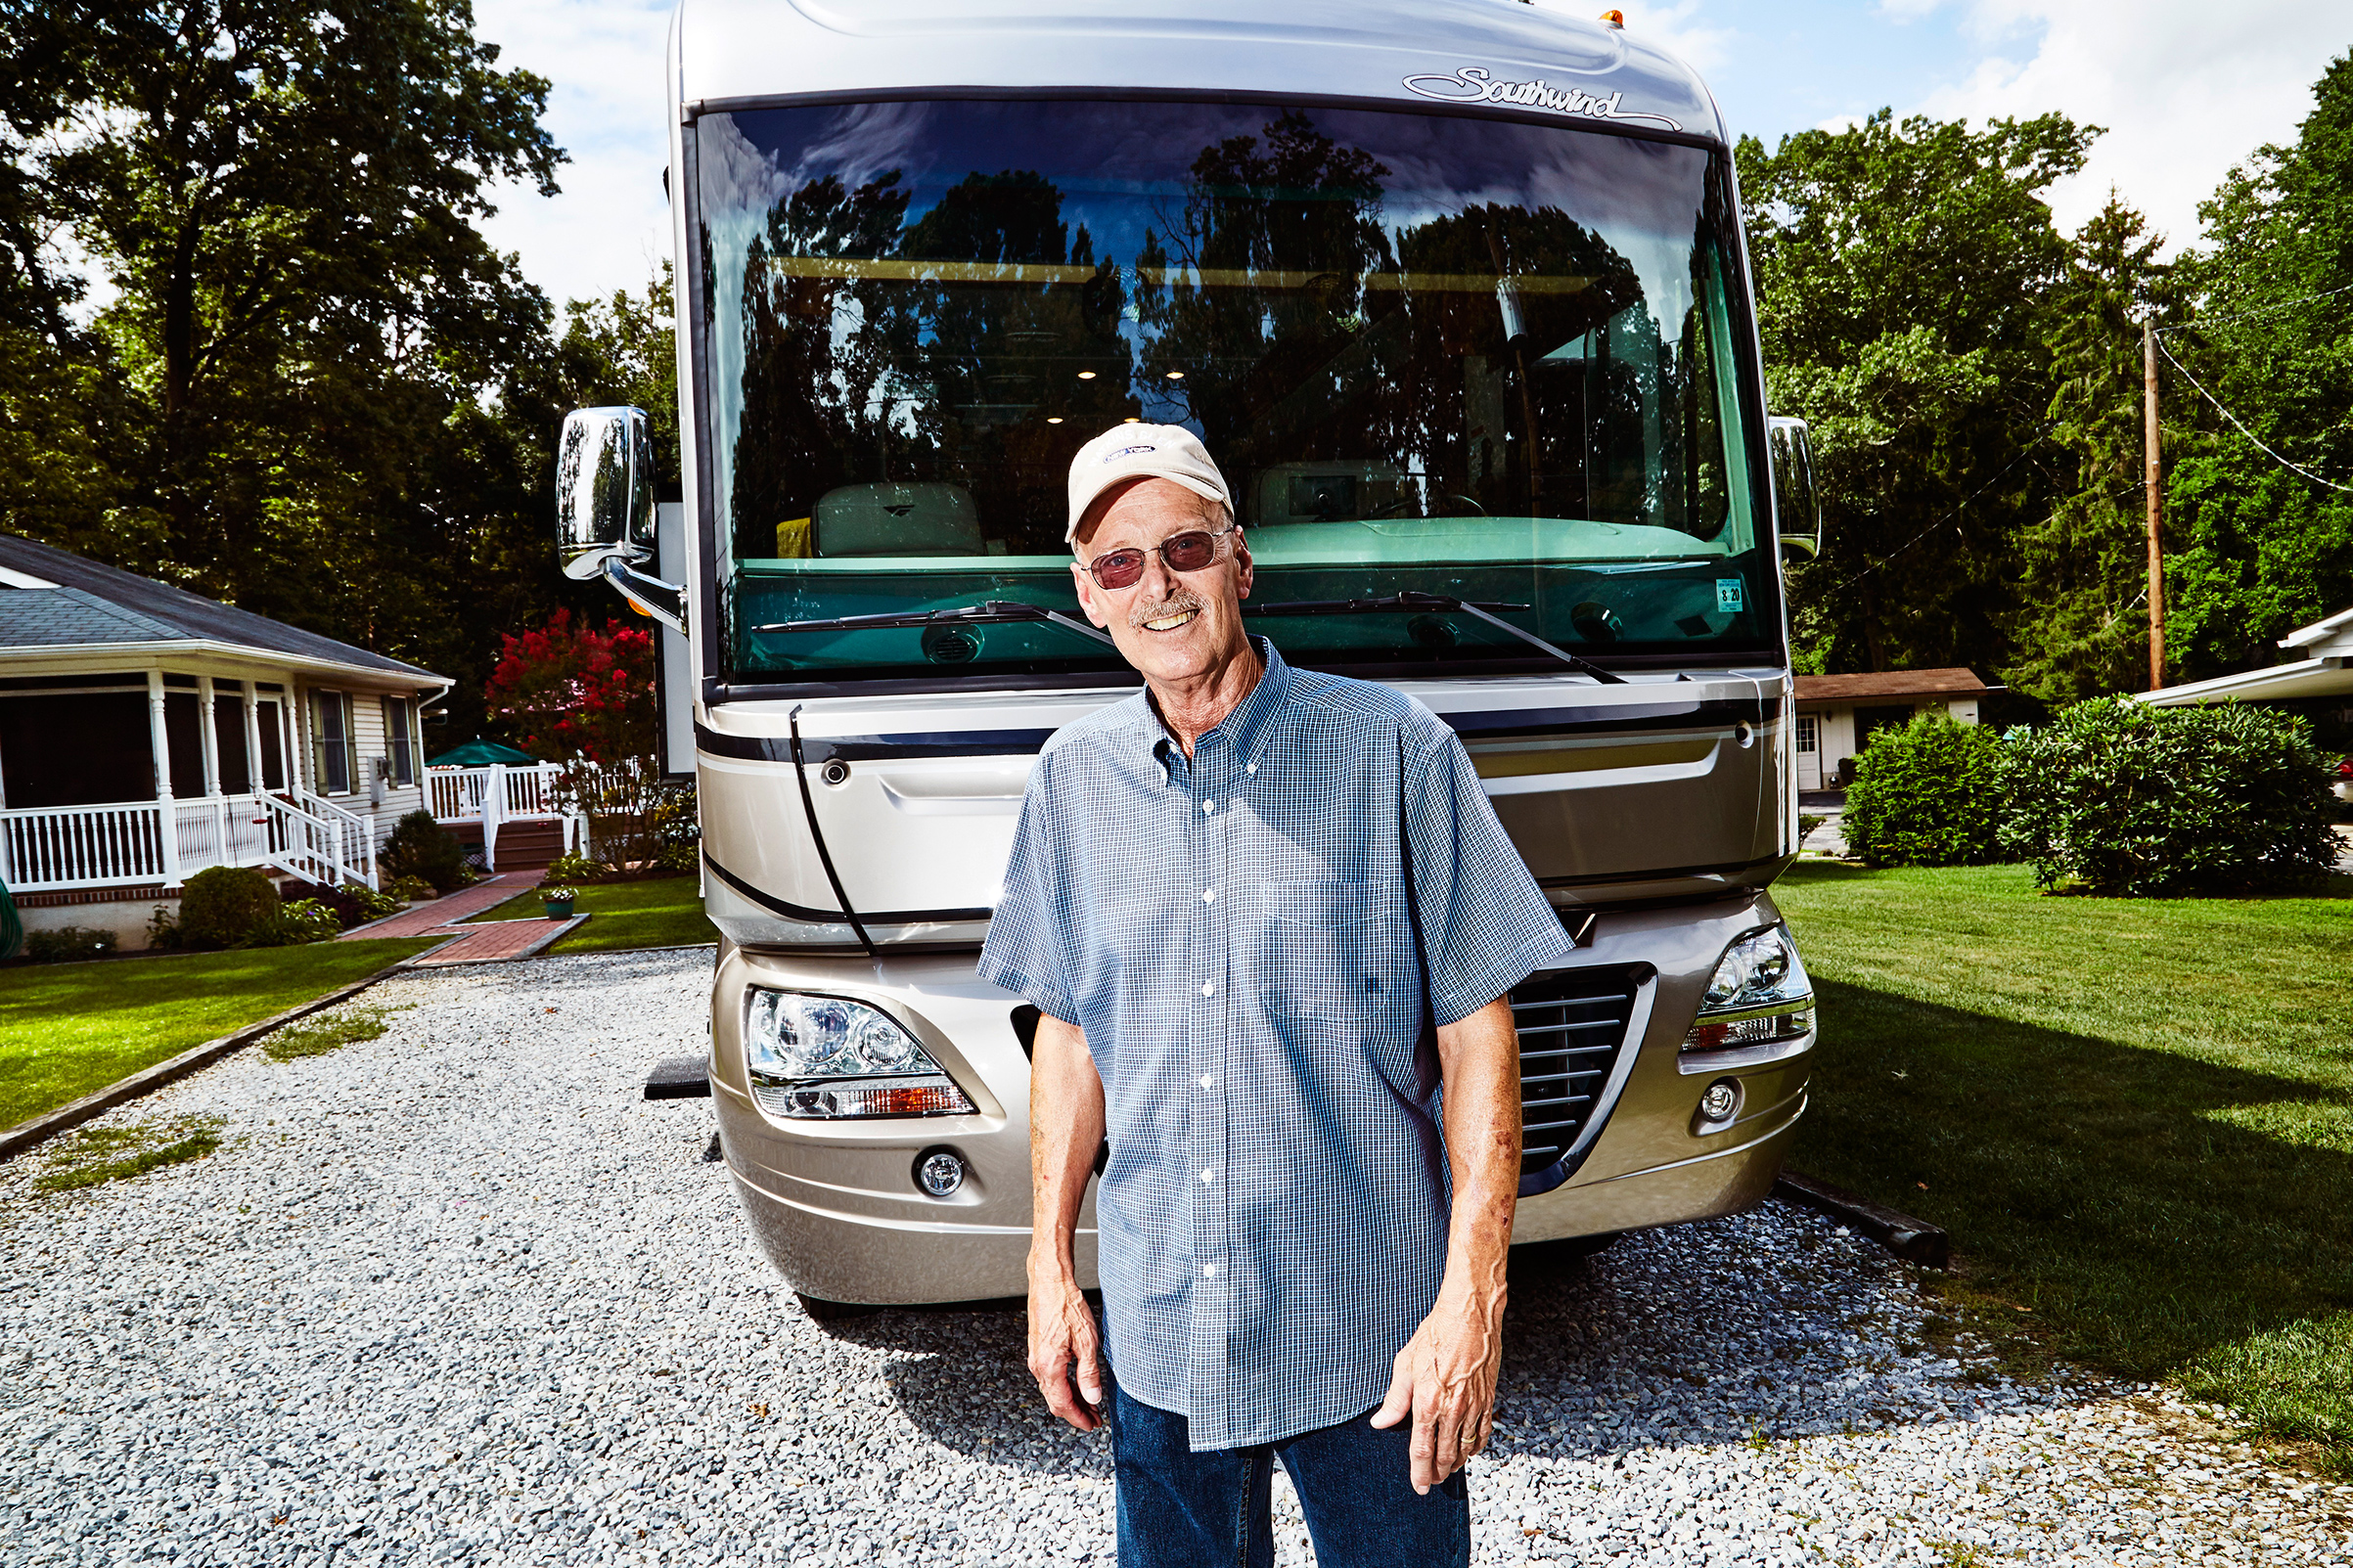 Bill Ludwig with his prized RV